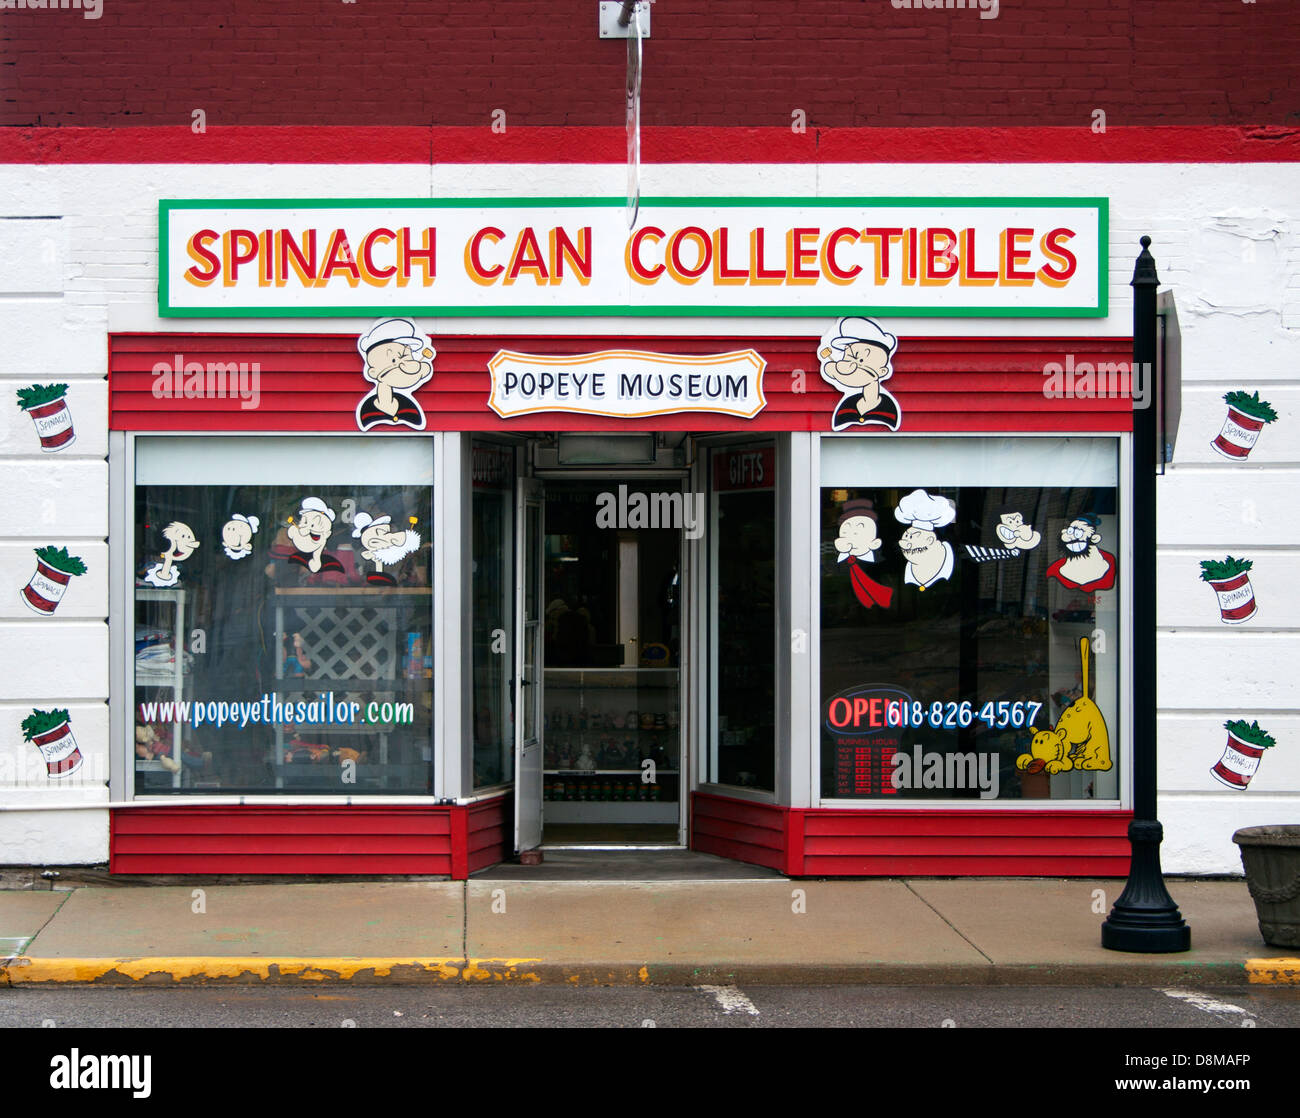 Spinach Can Collectibles Popeye Museum in Chester Illinois - Stock Image